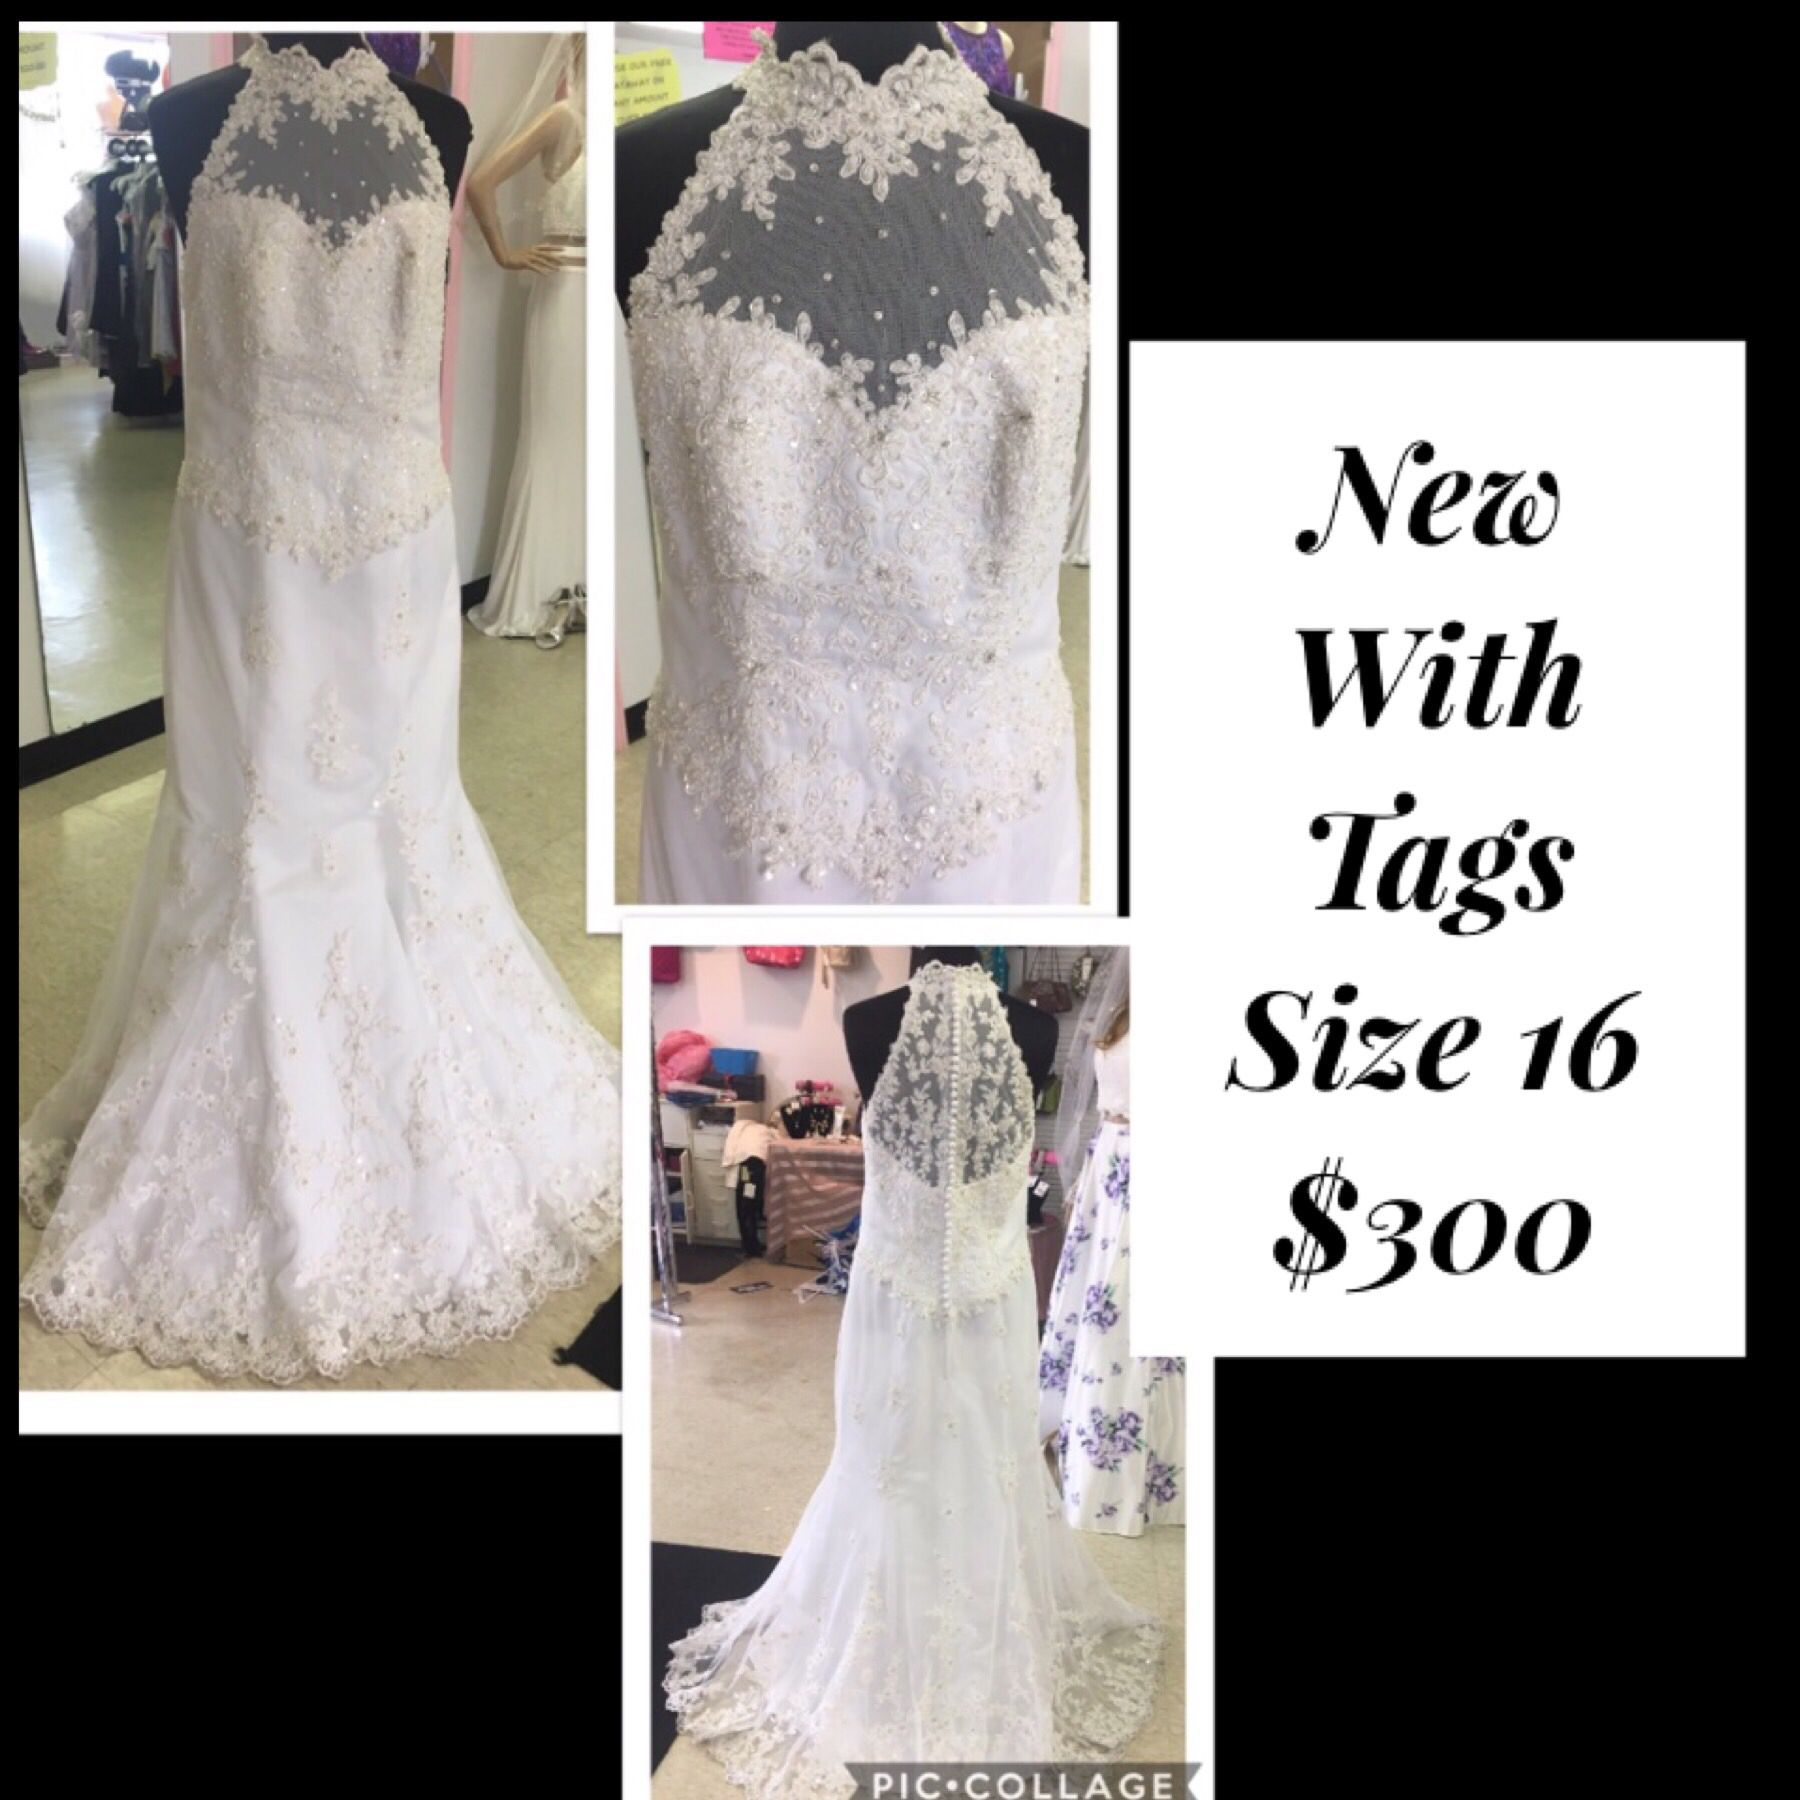 Wedding Gowns Indianapolis: We Wedding Gowns We Have In Stock Are GORGEOUS. This One